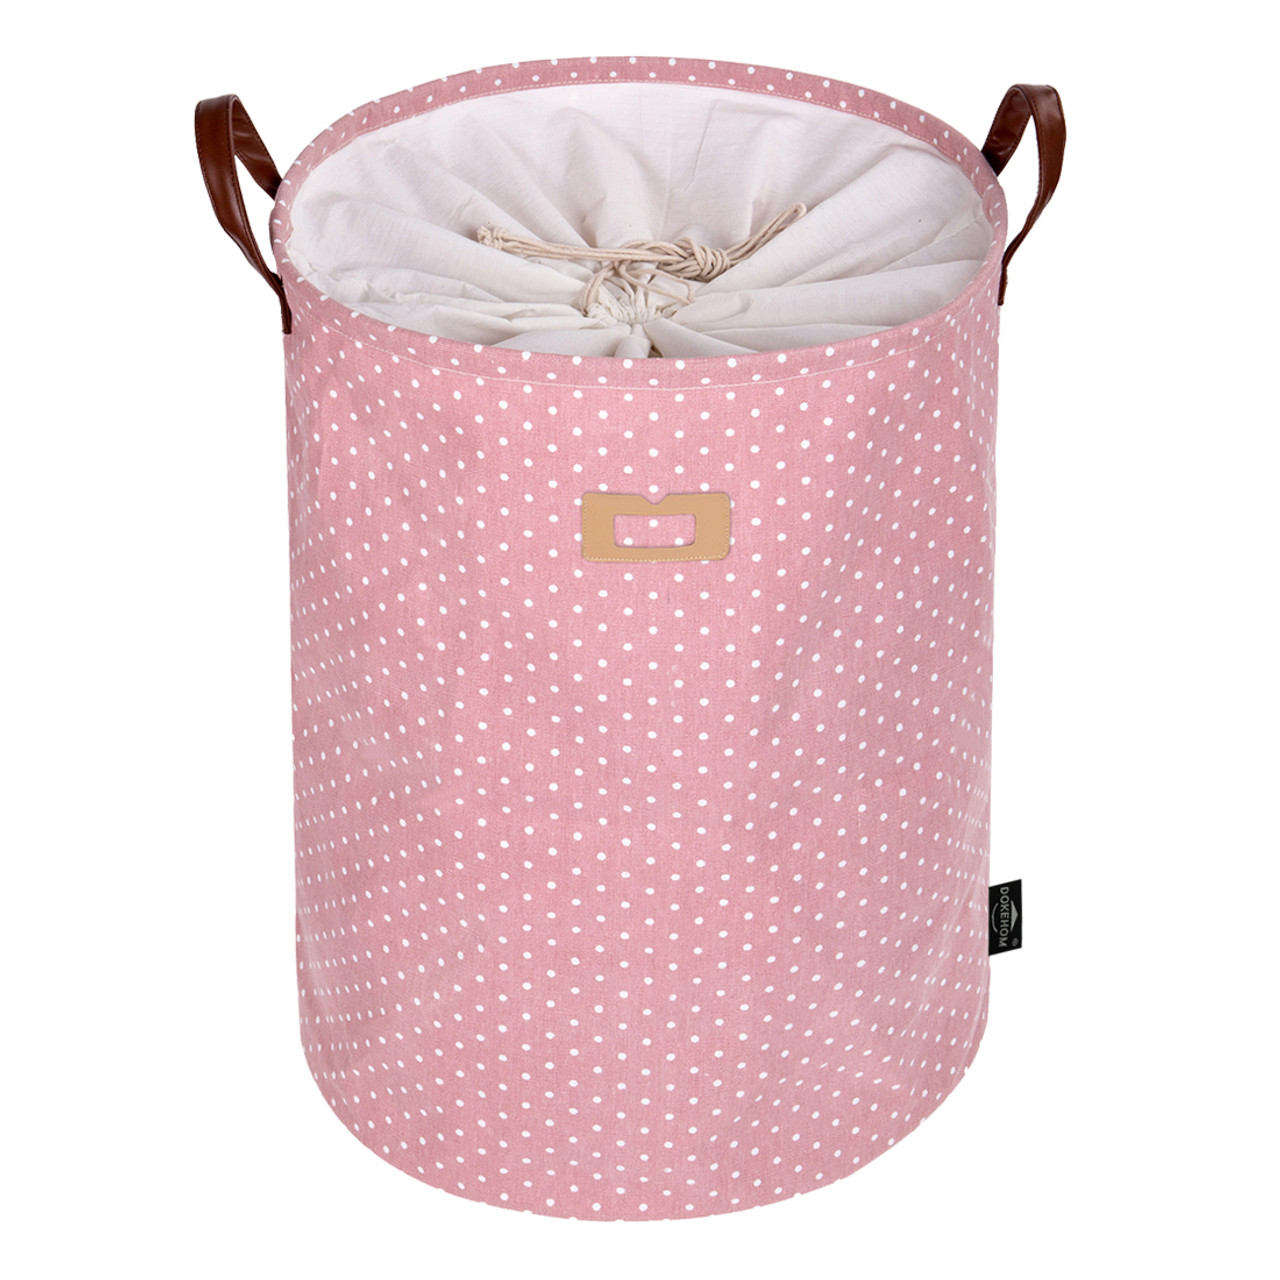 67e4ffba01fb DOKEHOM 22-Inches Thickened X-Large Drawstring Laundry Basket  Storage-(Available 19 and 22 Inches in 9 Colors)- with Durable Leather  Handle, Cotton ...